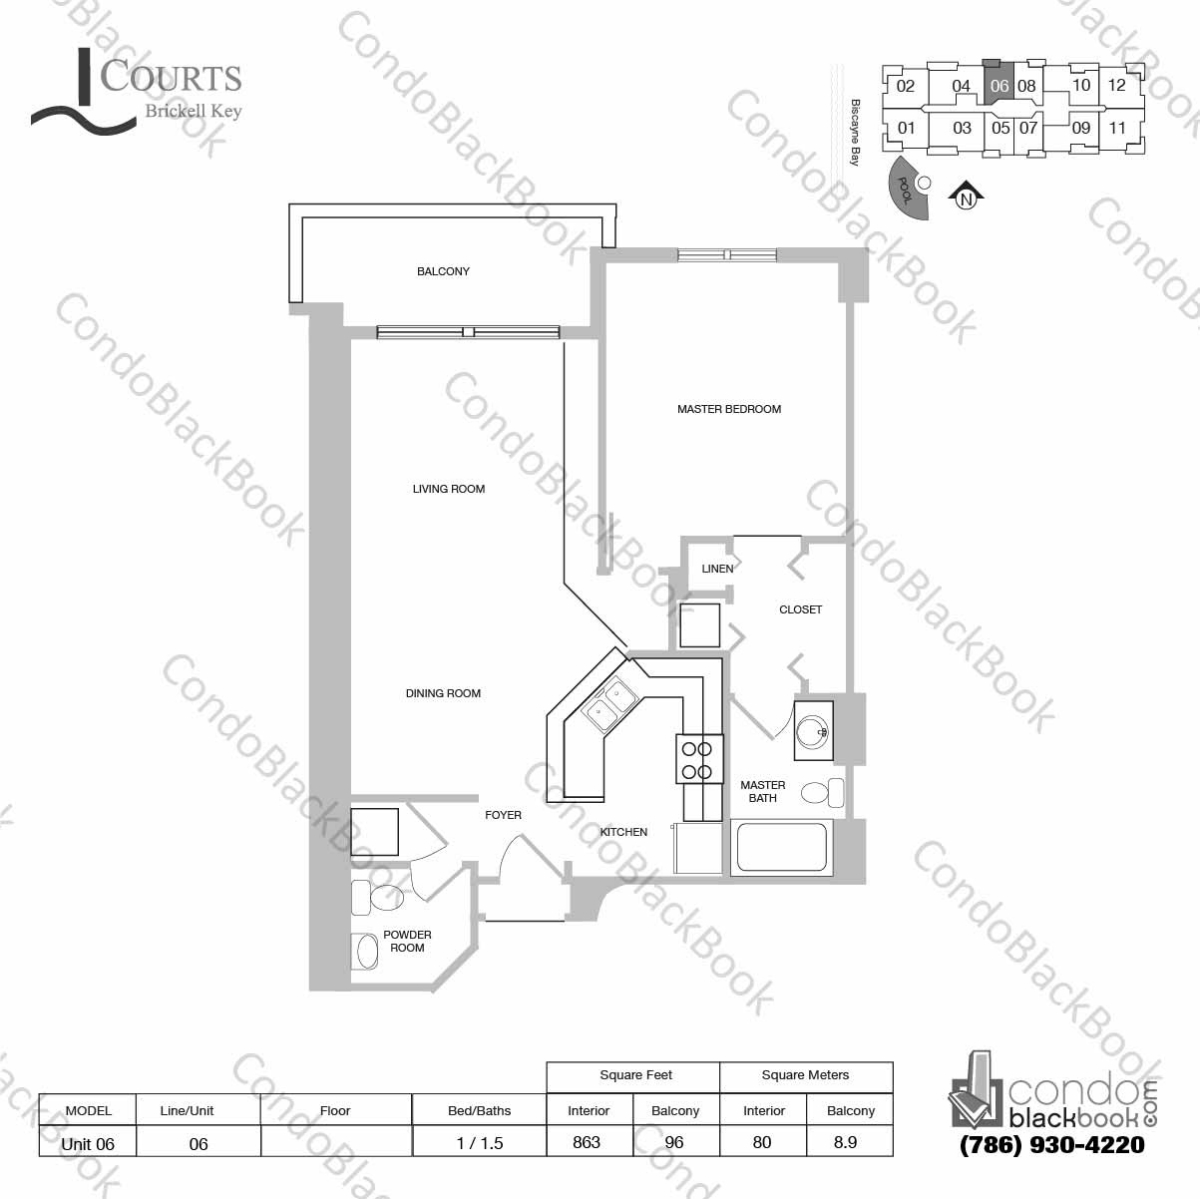 Floor plan for Courts Condo Brickell Key Brickell Key Miami, model Unit 06, line 06, 1 / 1.5 bedrooms, 863 sq ft